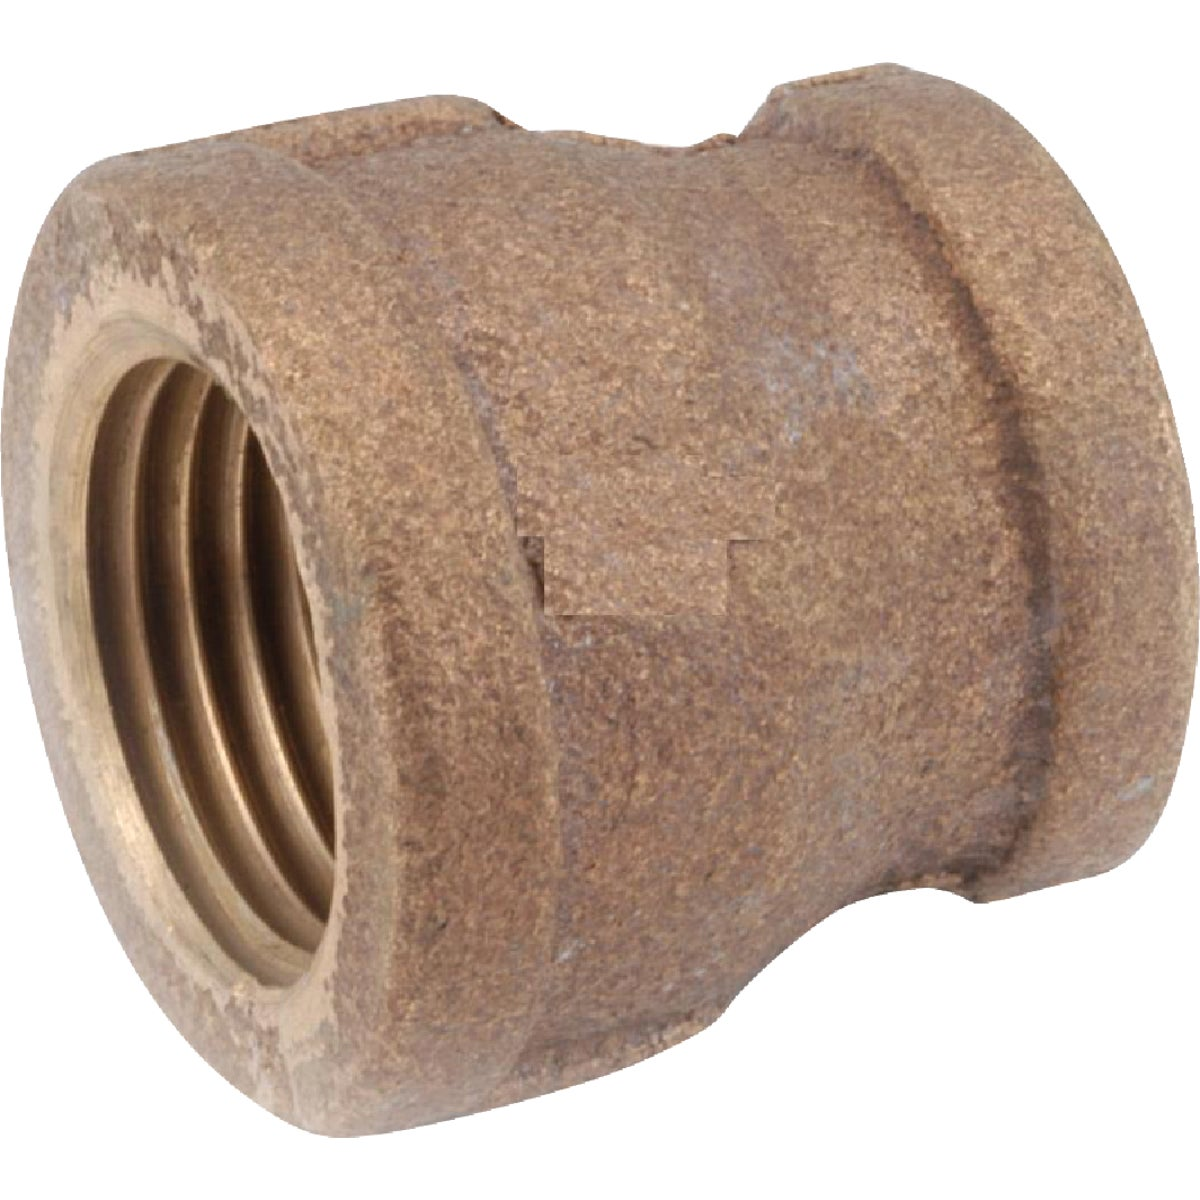 3/4X3/8 BRASS COUPLING - 738119-1206 by Anderson Metals Corp